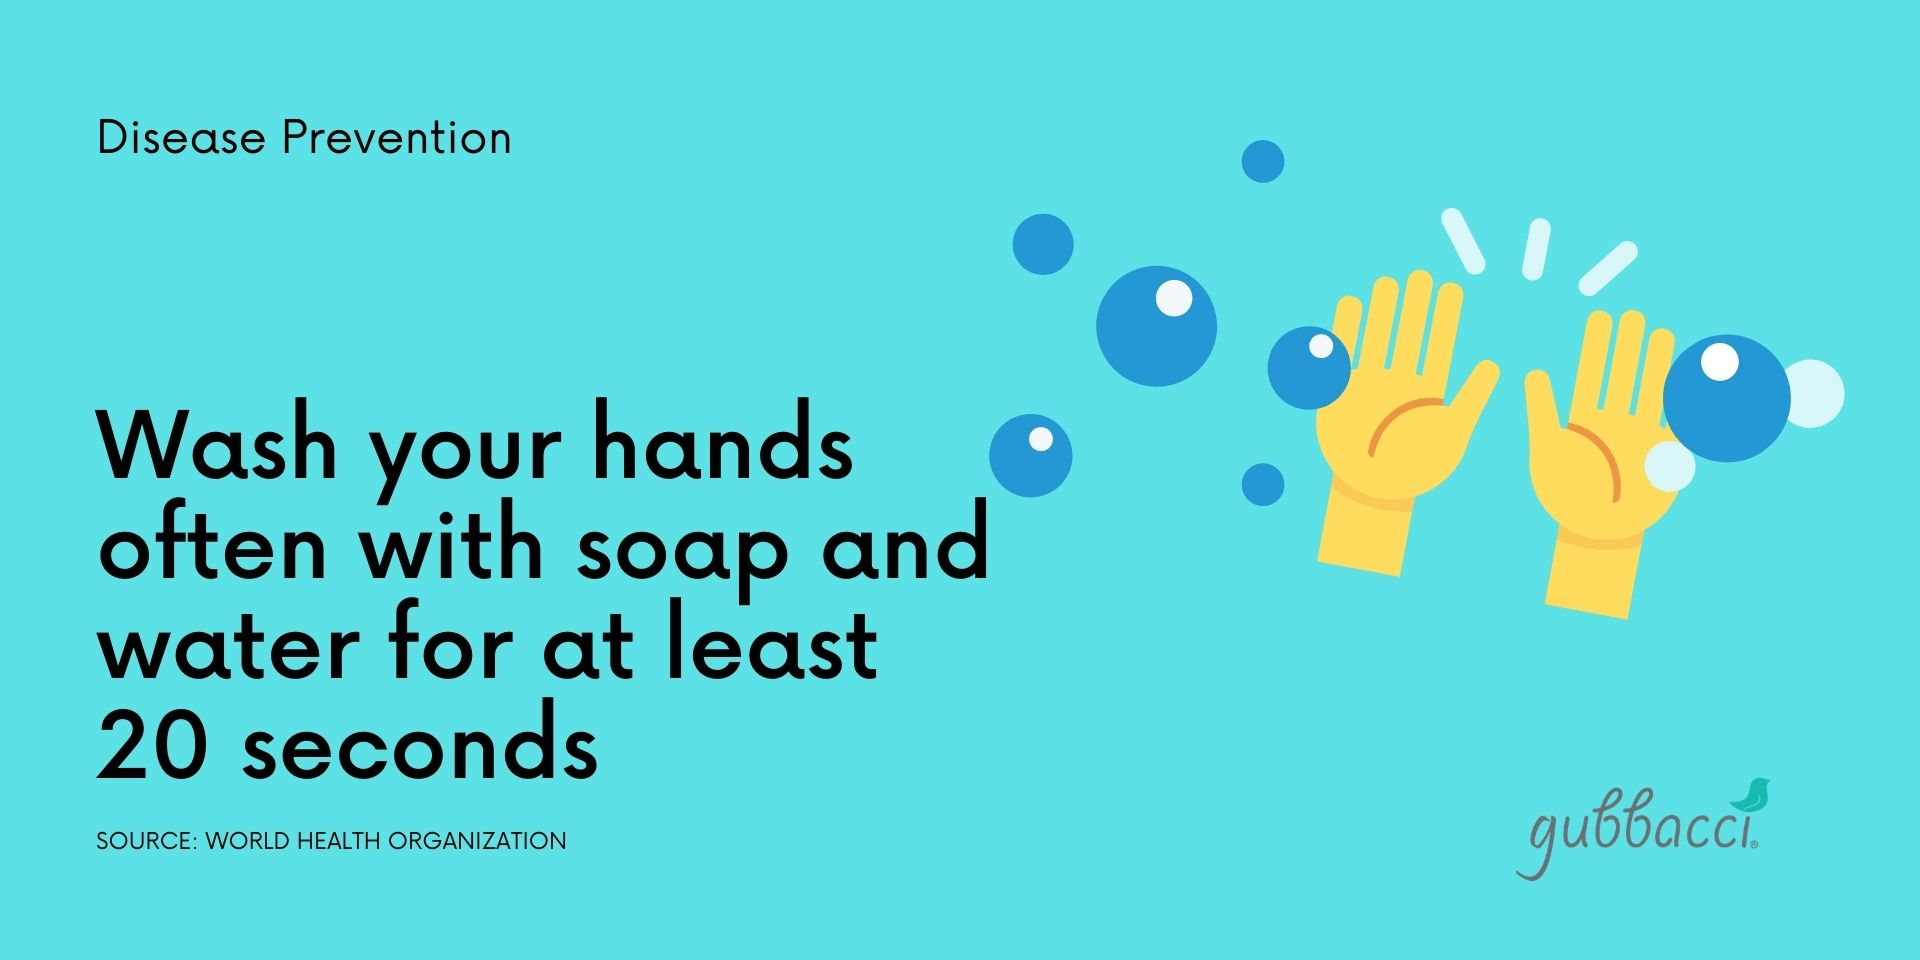 Disease prevention notice - wash your hands